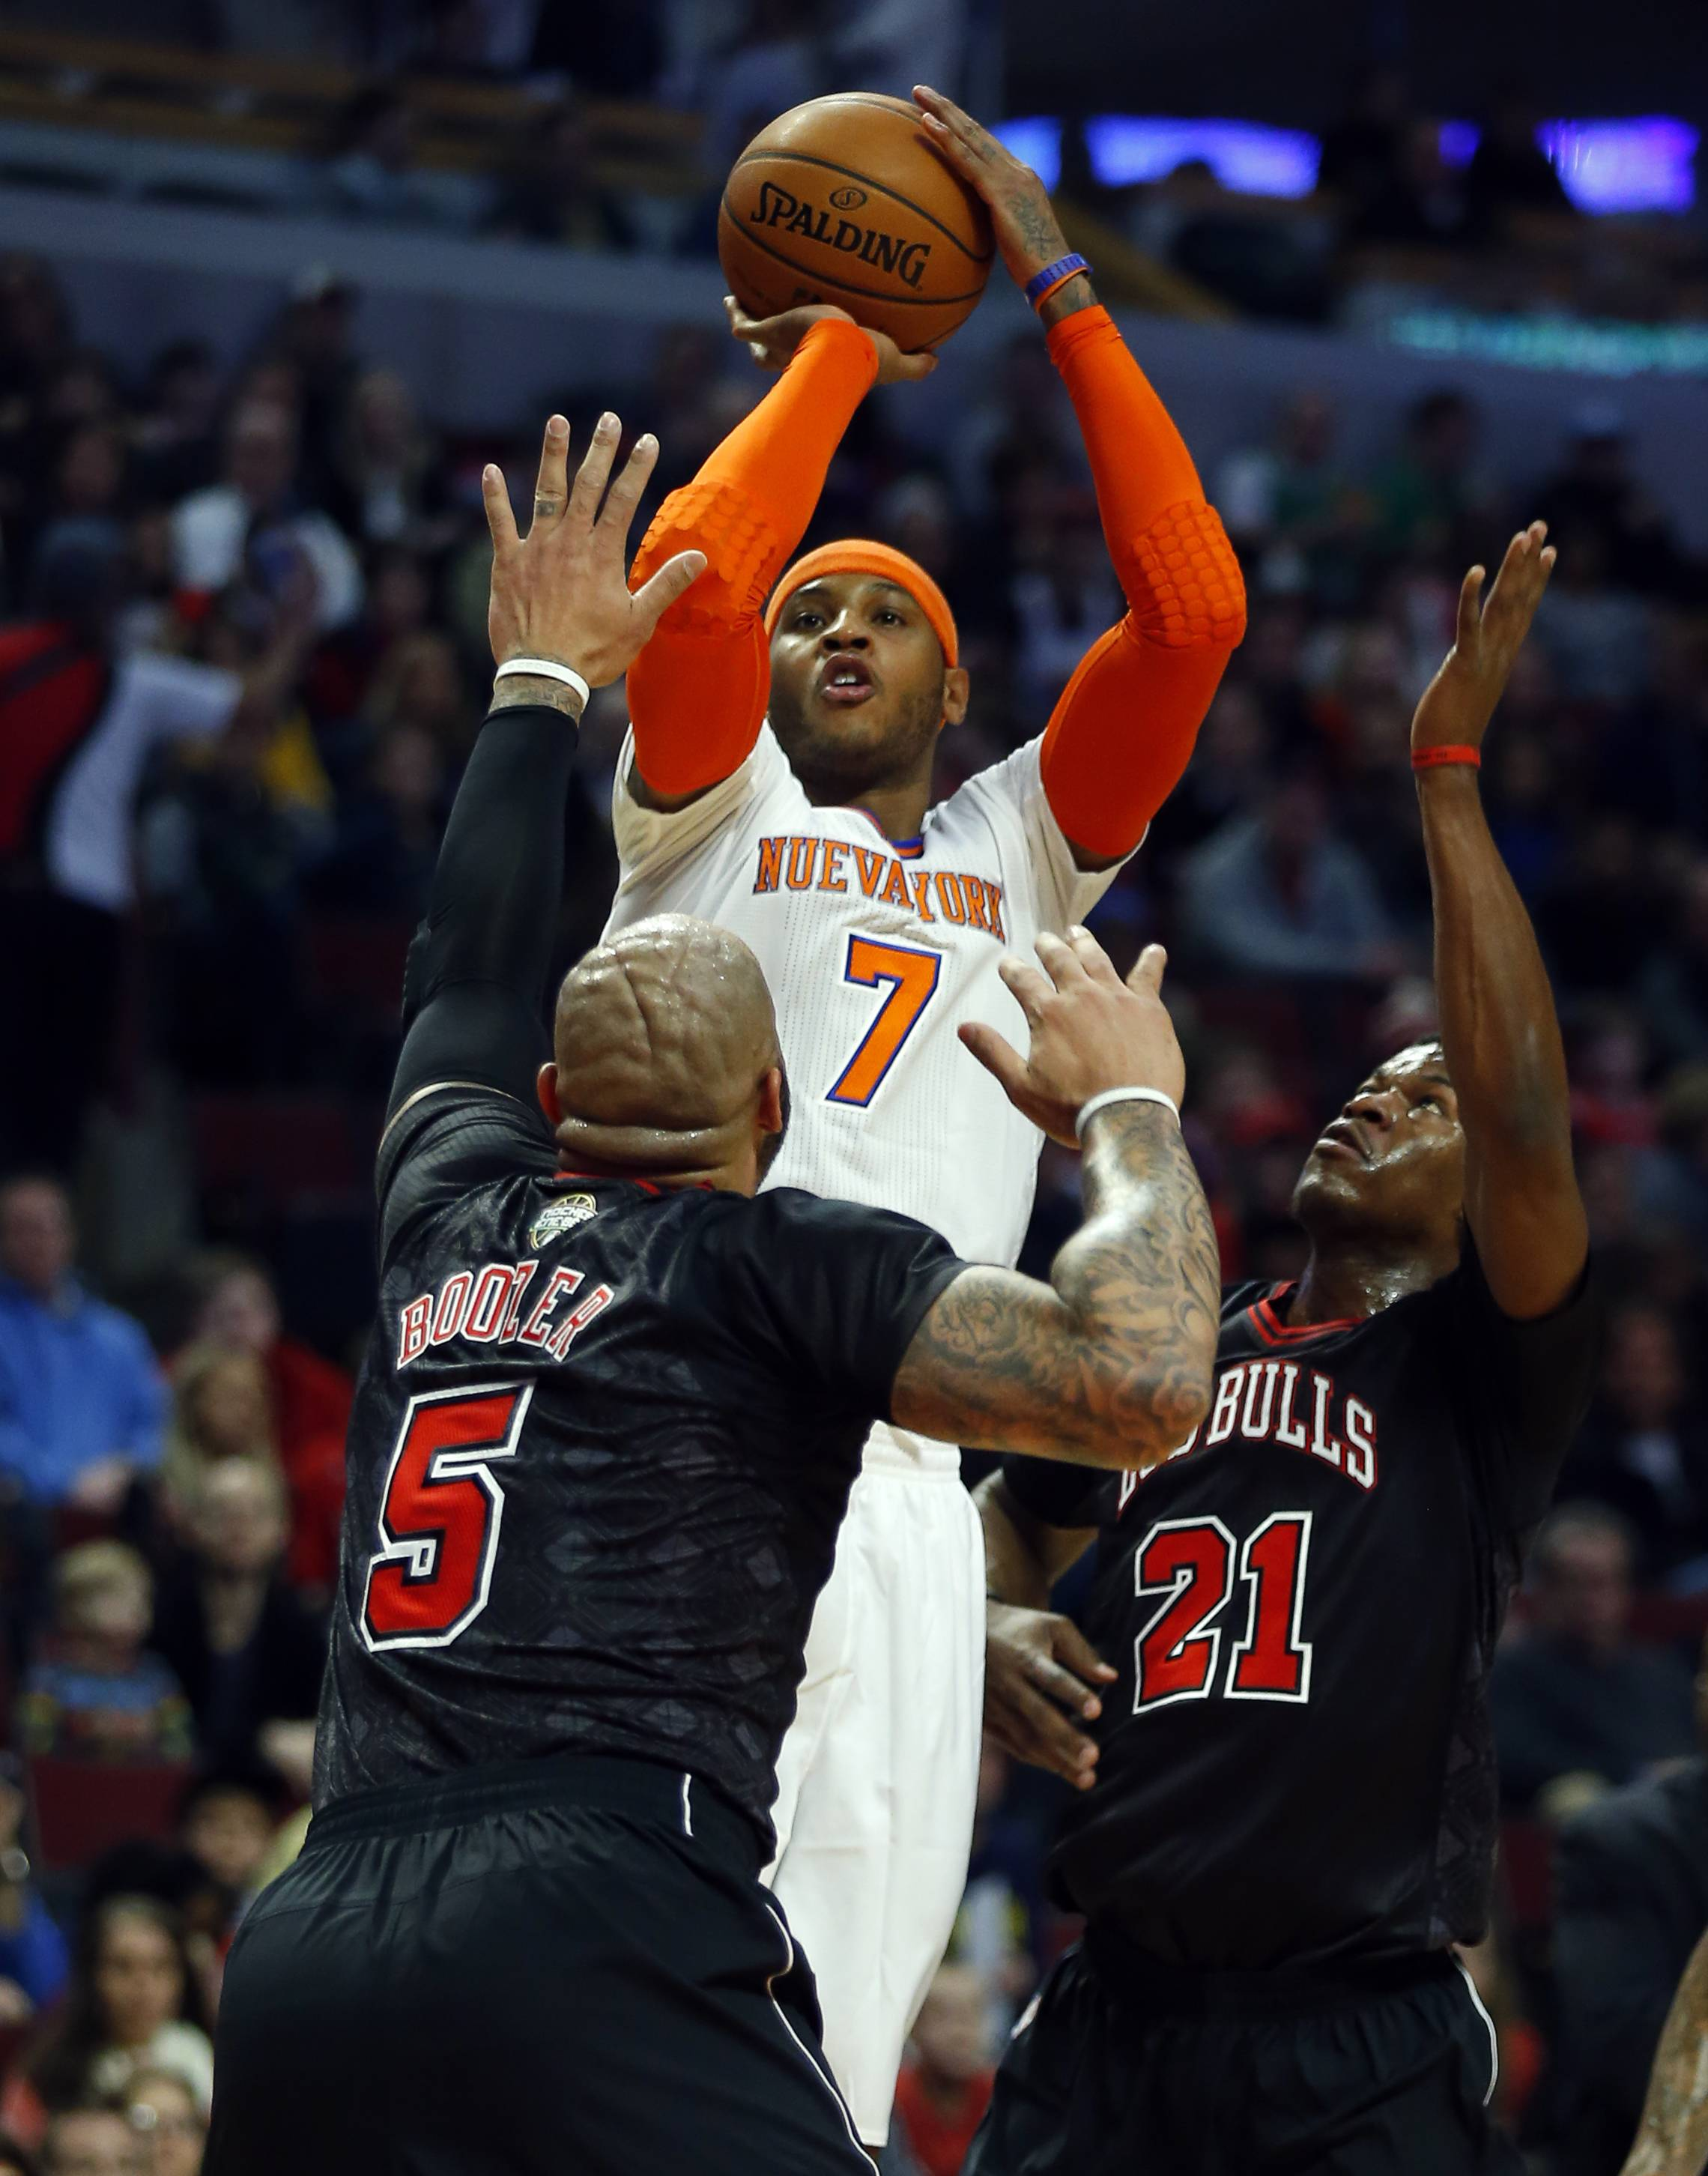 The Knicks' Carmelo Anthony, shooting over Bulls forwards Carlos Boozer (5) and Jimmy Butler (21) on Sunday at the United Center, is well aware of the buzz about someday soon playing for the Bulls.